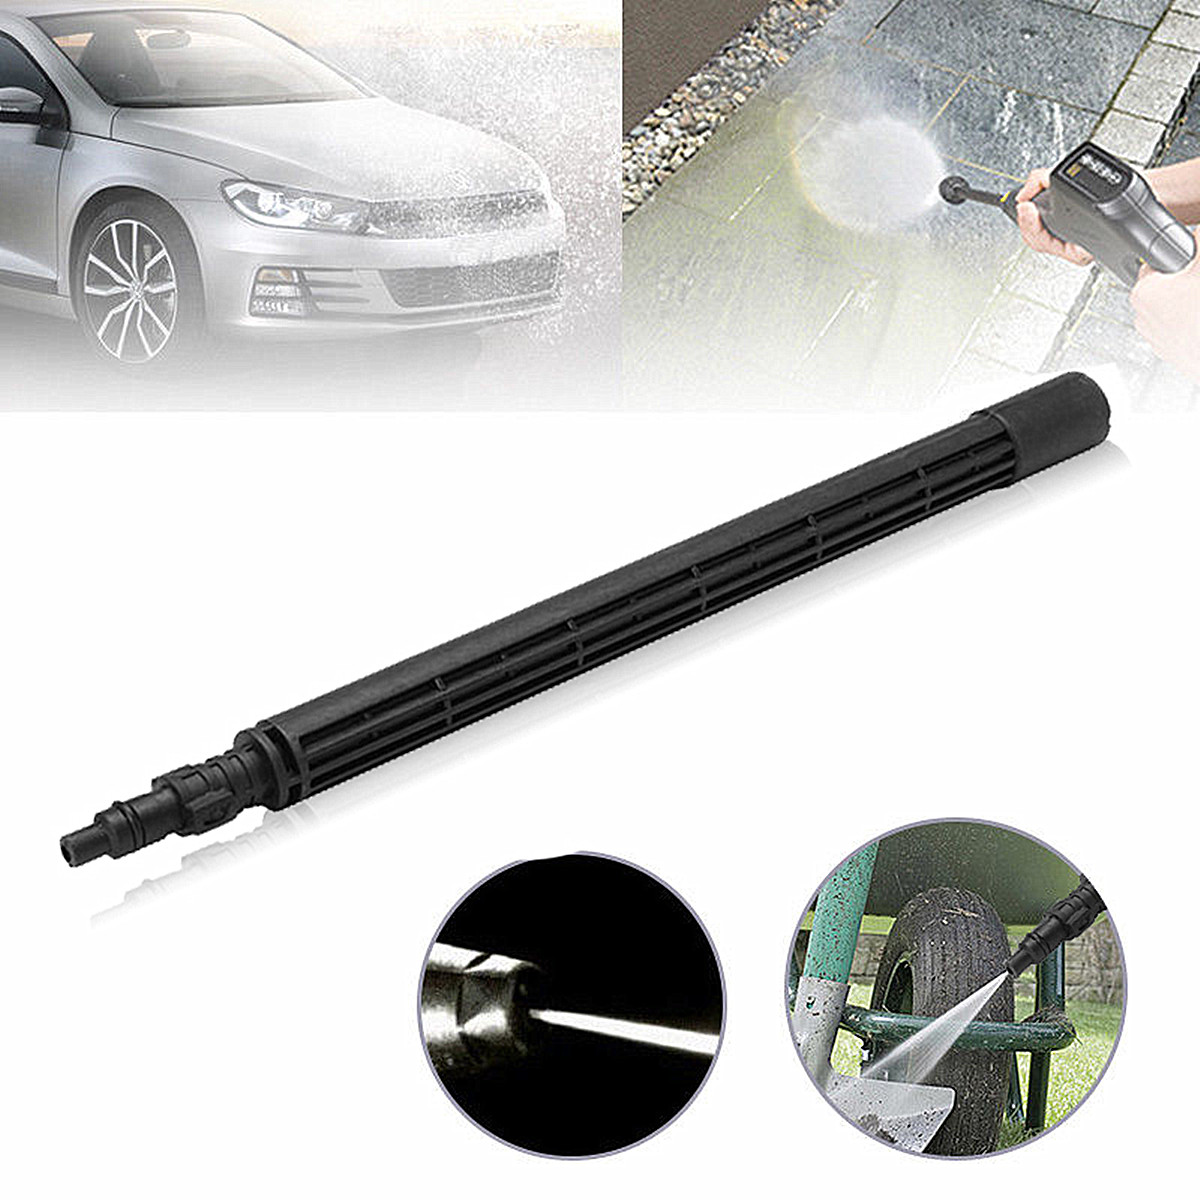 150 Bar Car High Pressure Washer Jet One Way Lance Nozzle Cleaner for K2 Karcher